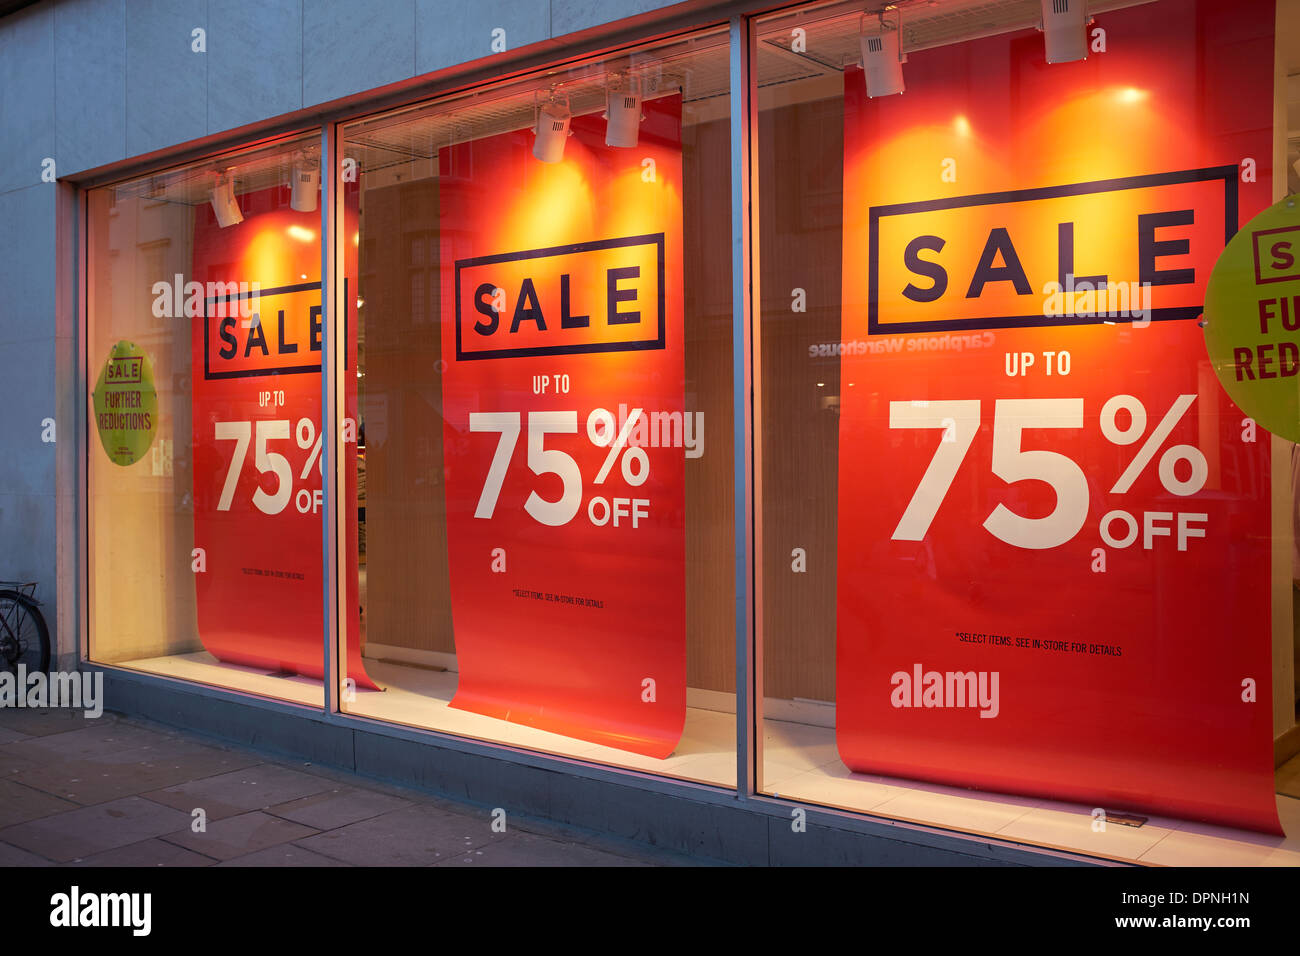 shop online shopping and store window 11 tips for safe online shopping   there's every reason in the world to shop online the bargains are there  no online shopping store needs your social security number or your birthday to .